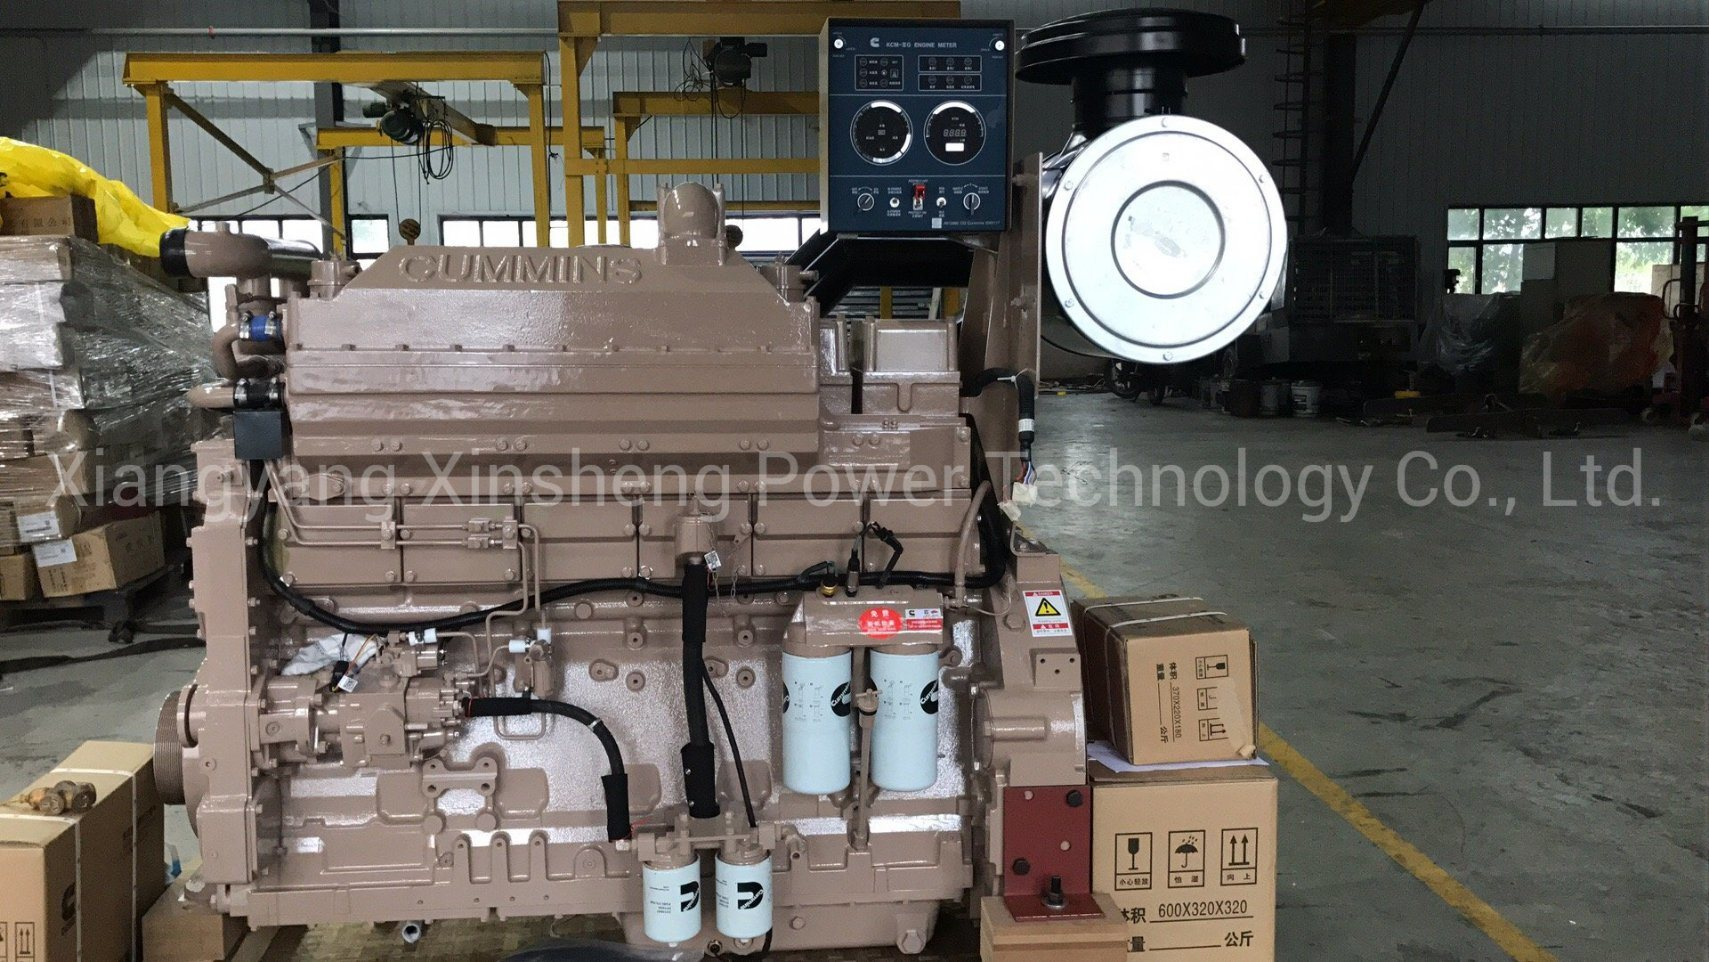 China Nta855 M Chongqing Cummins Marine Propulsion Power Boat Engine Photos Pictures Made In China Com